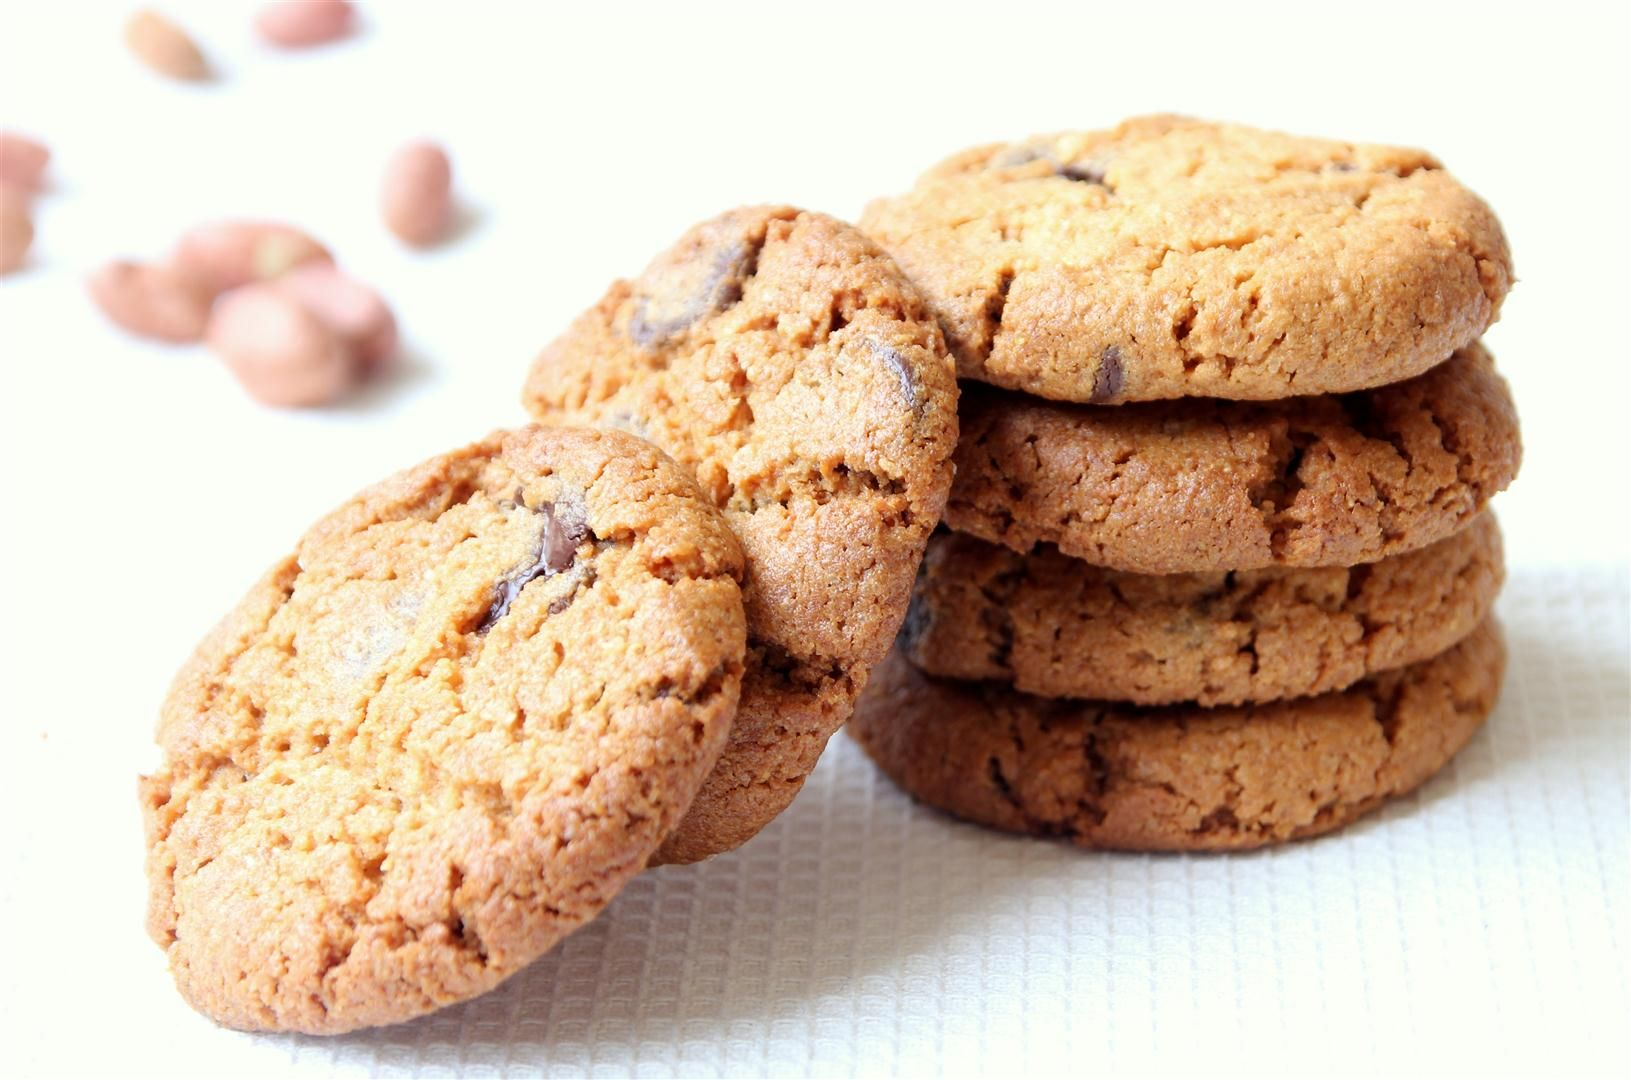 Vegan Peanut Butter Cookies with Chocolate Chips and Coconut